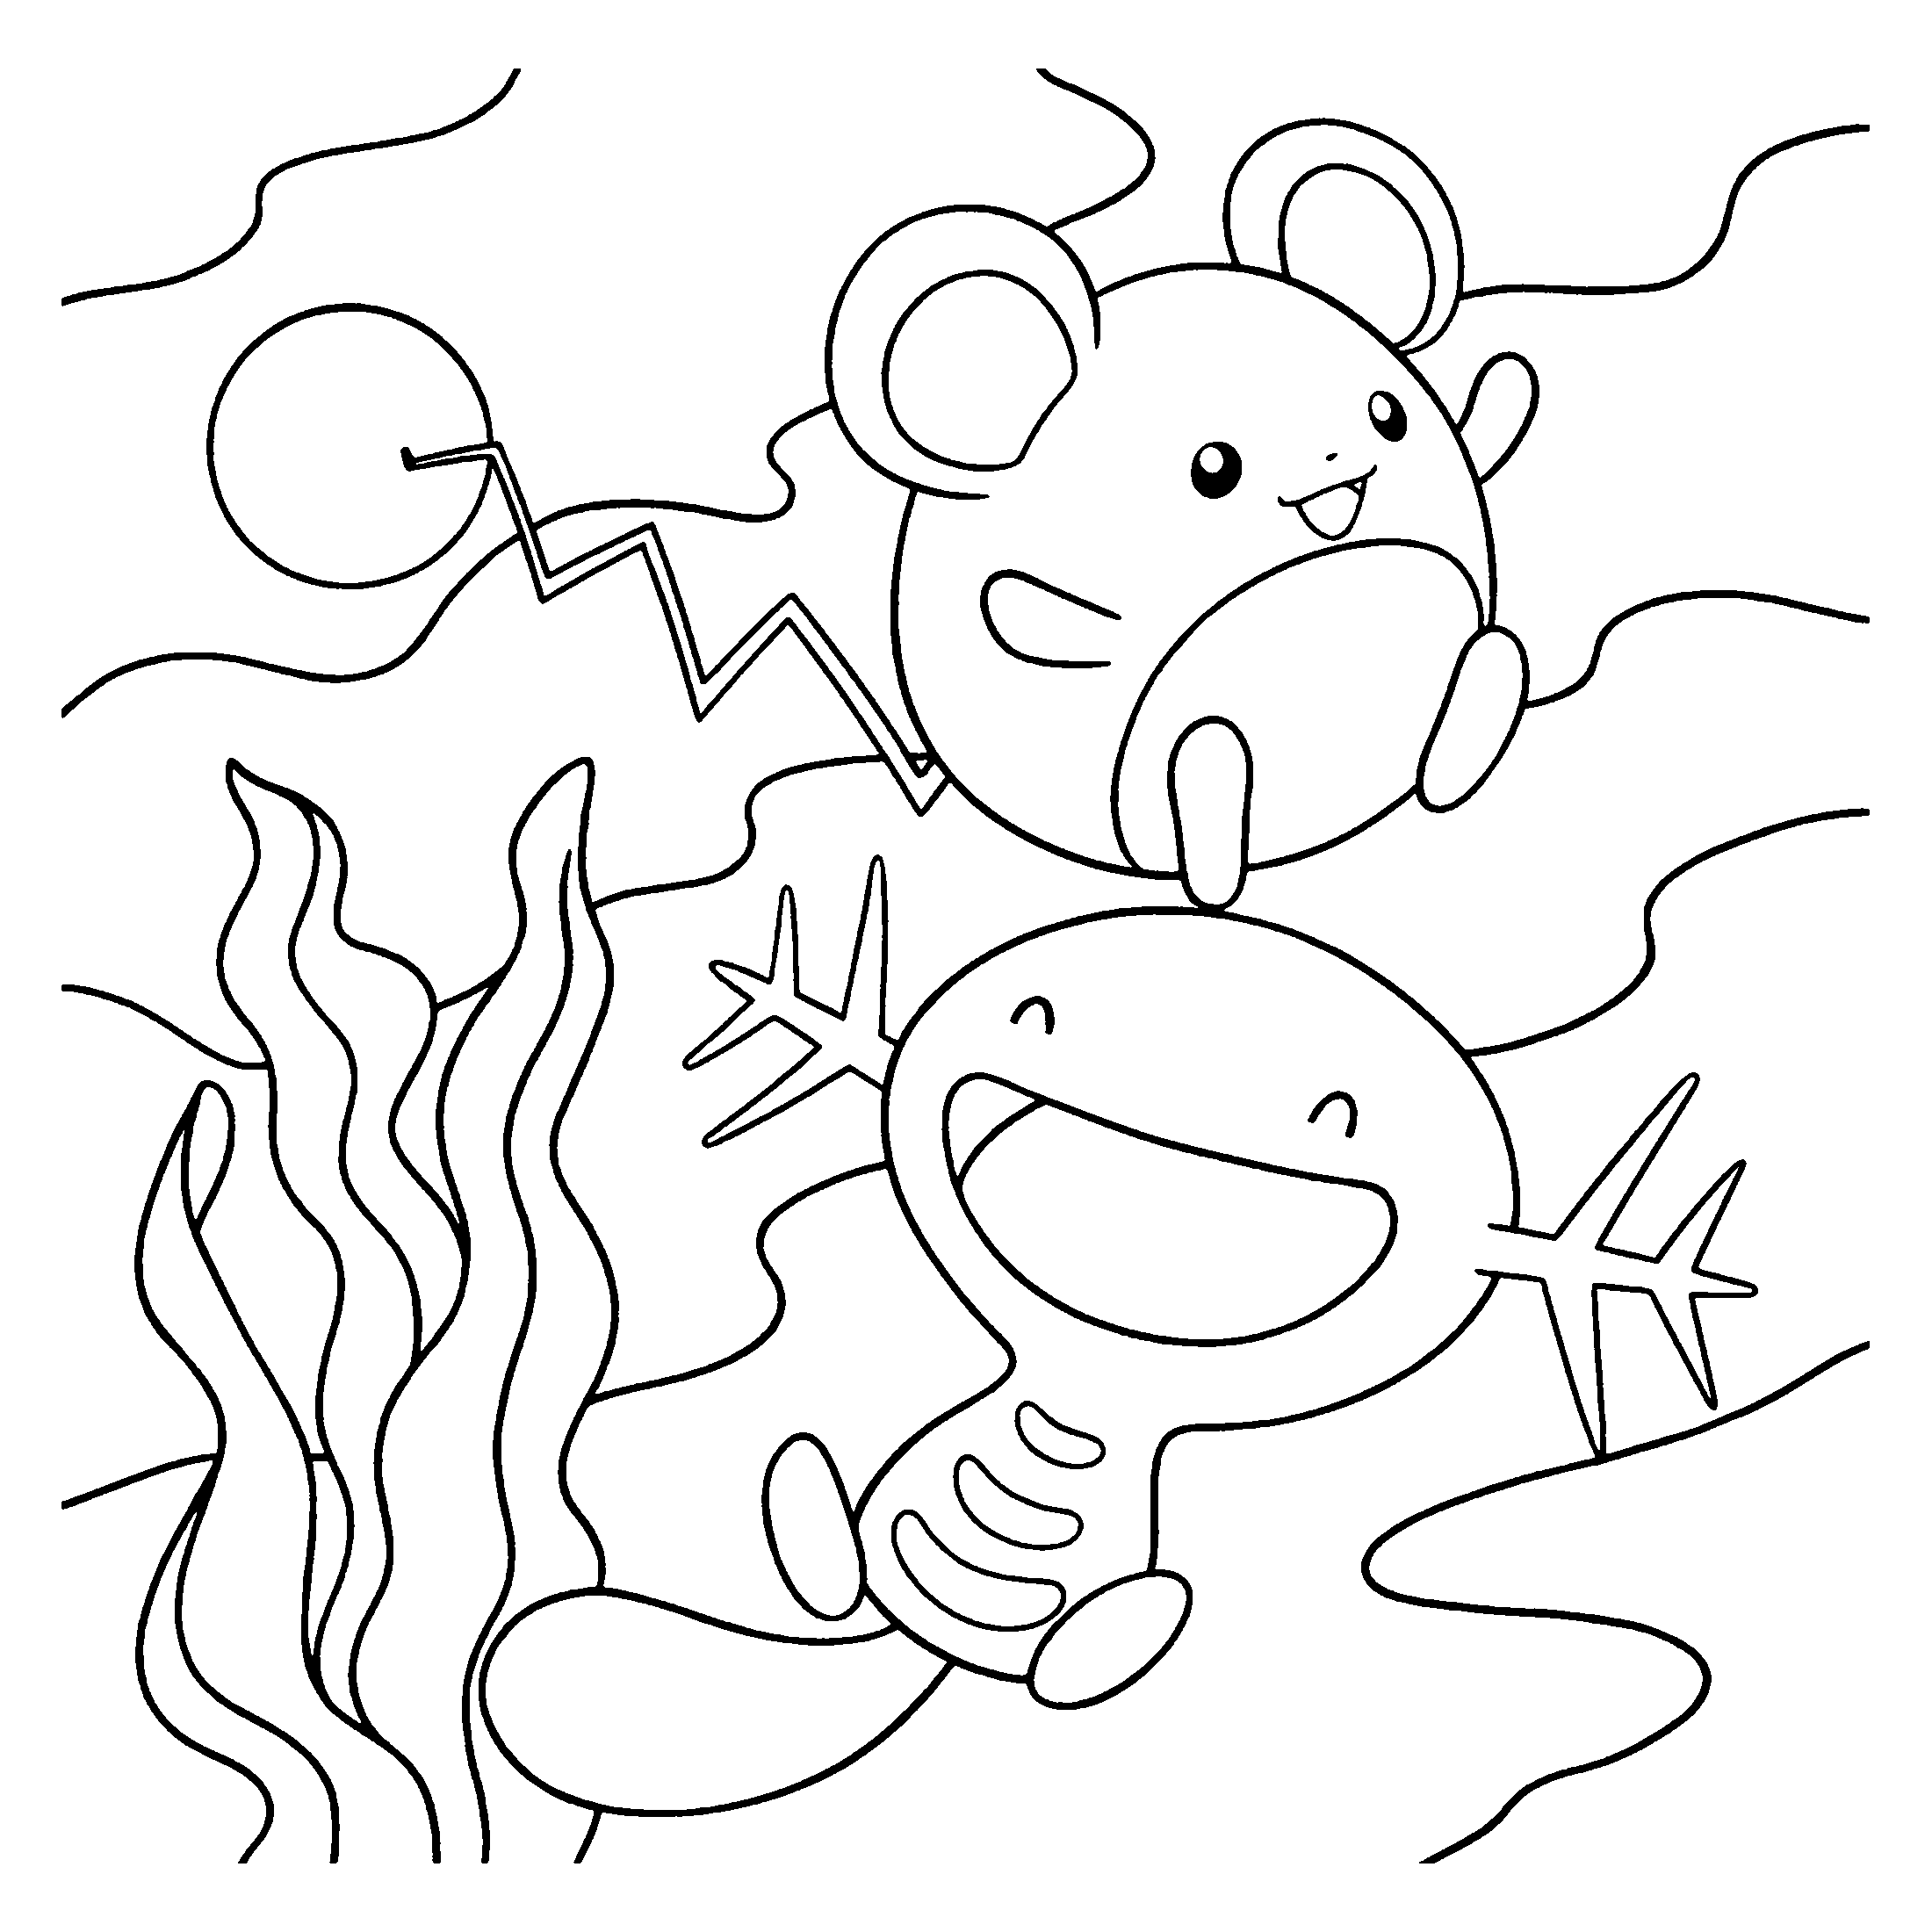 pakemon diamond pearl coloring pages - photo#4